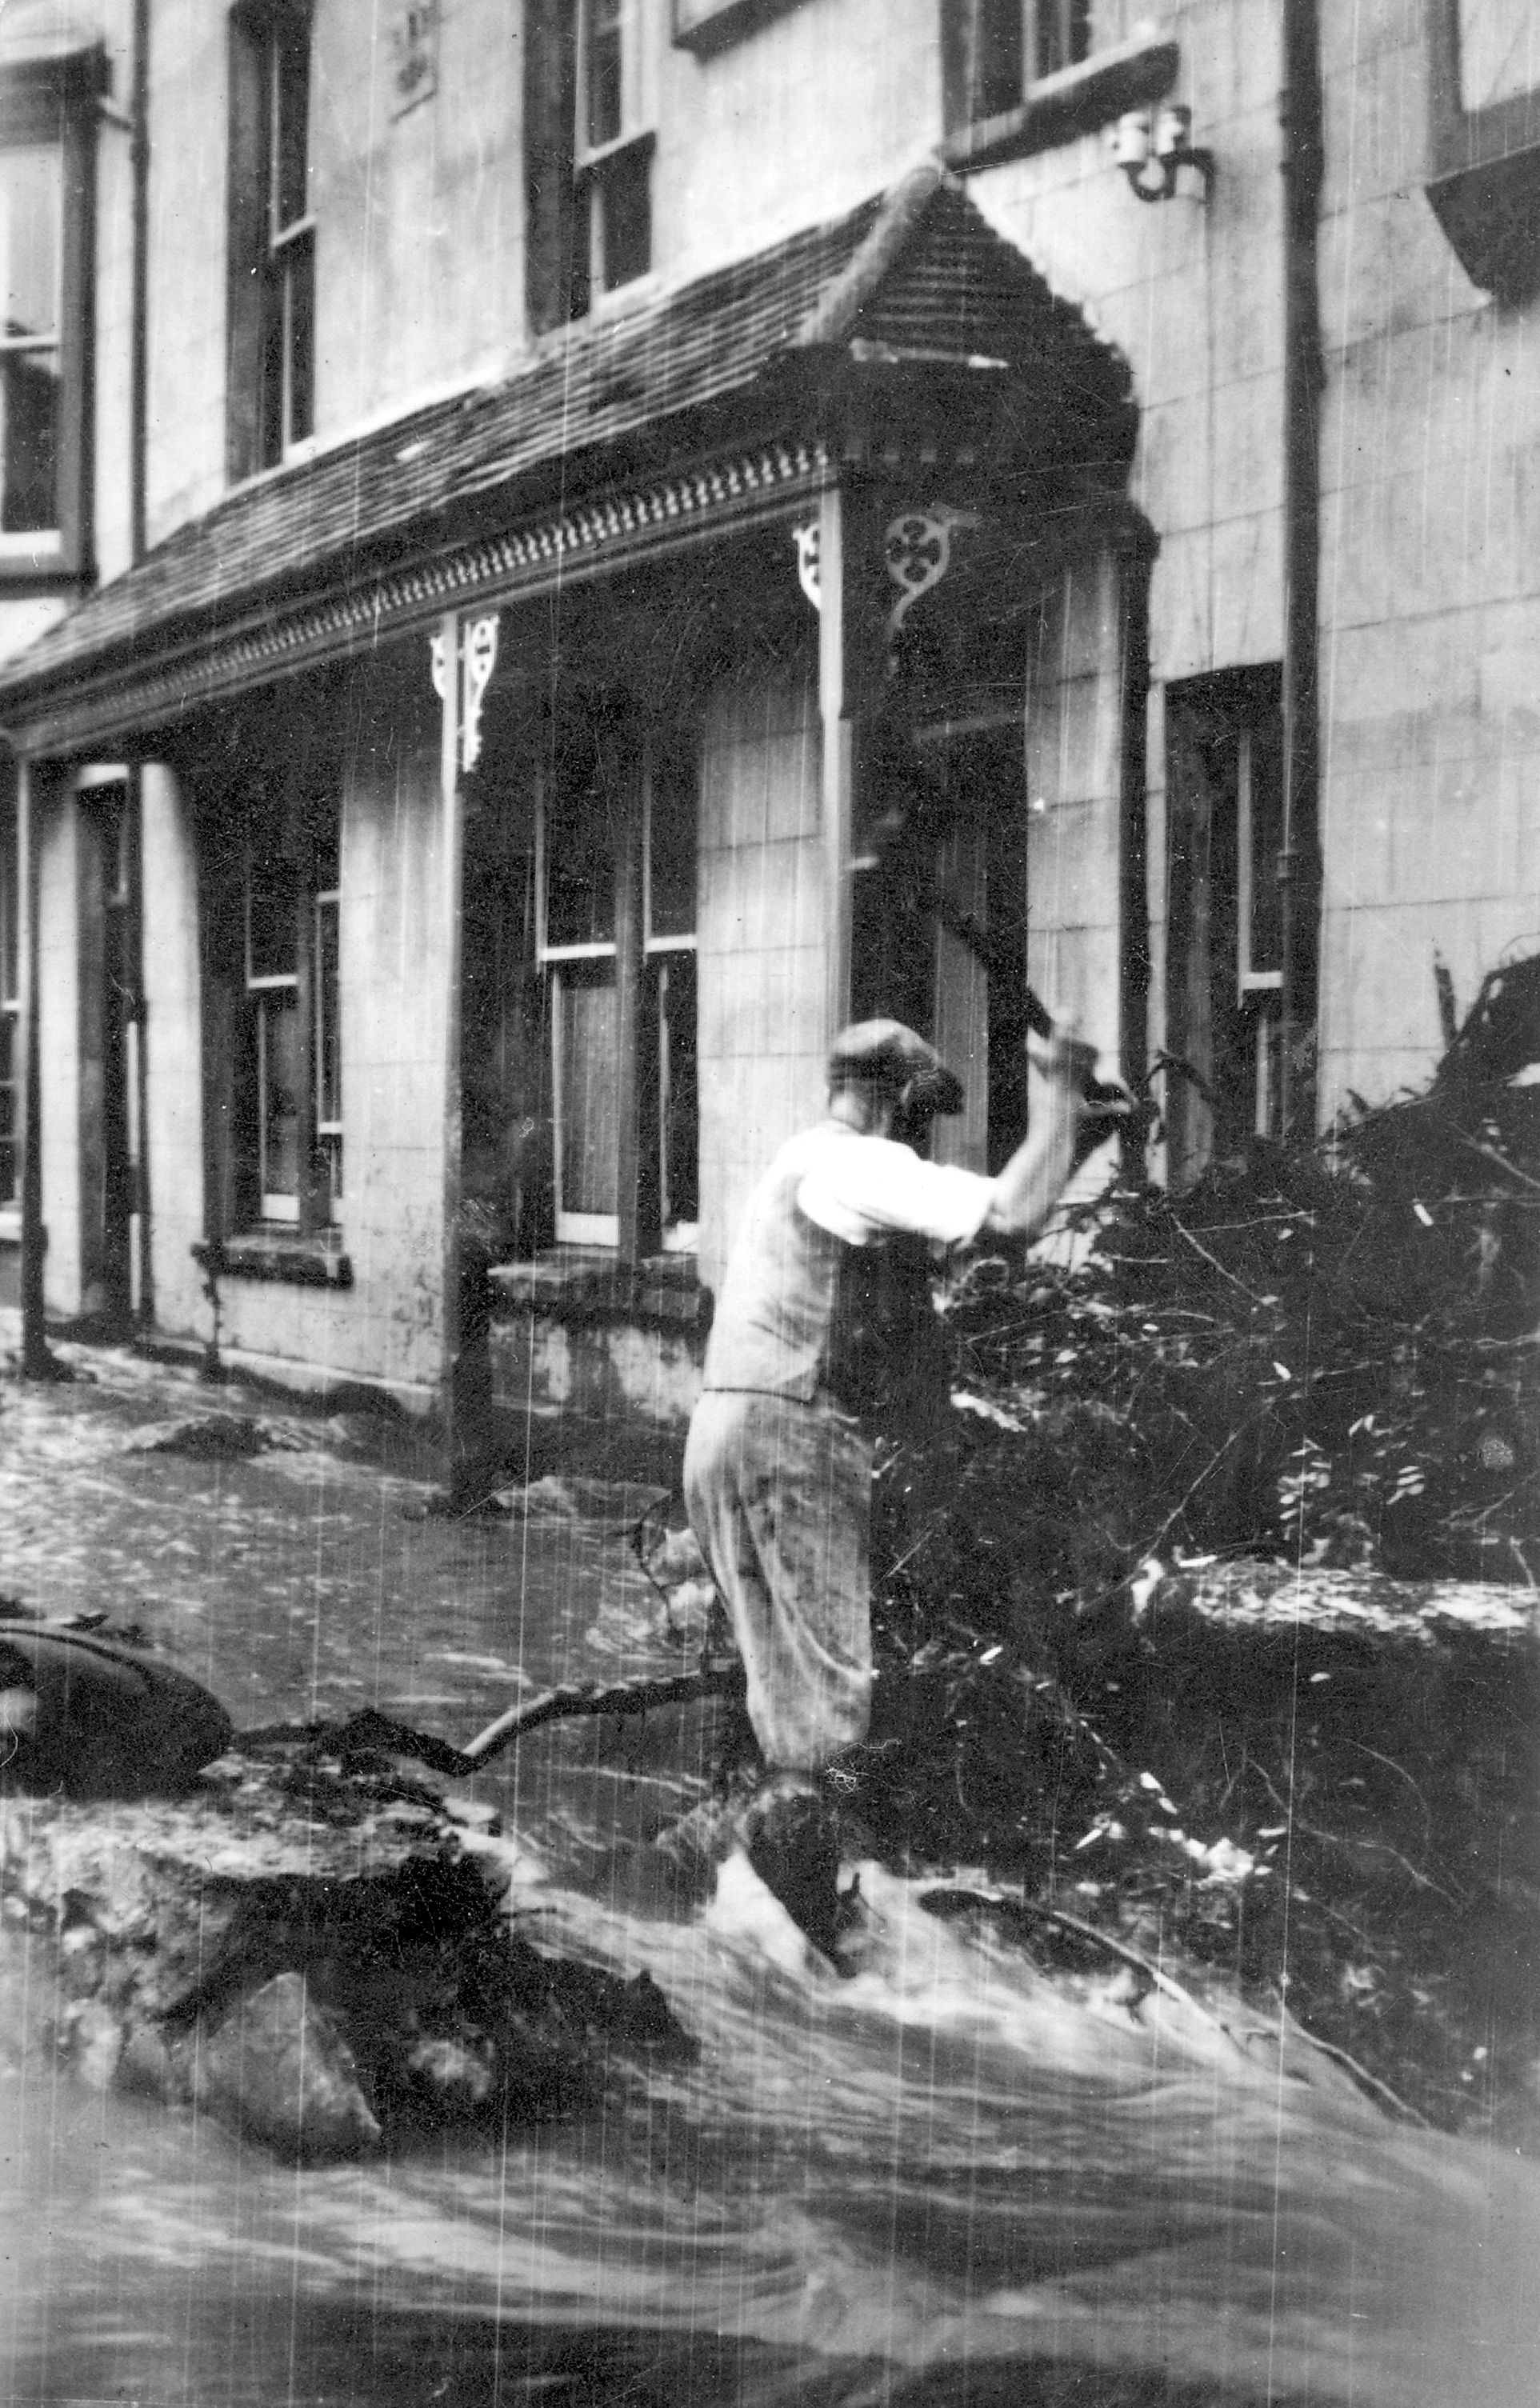 Parracombe Flood of 1952 outside Fox and Goose pub - Kind permission of Barbara Ford